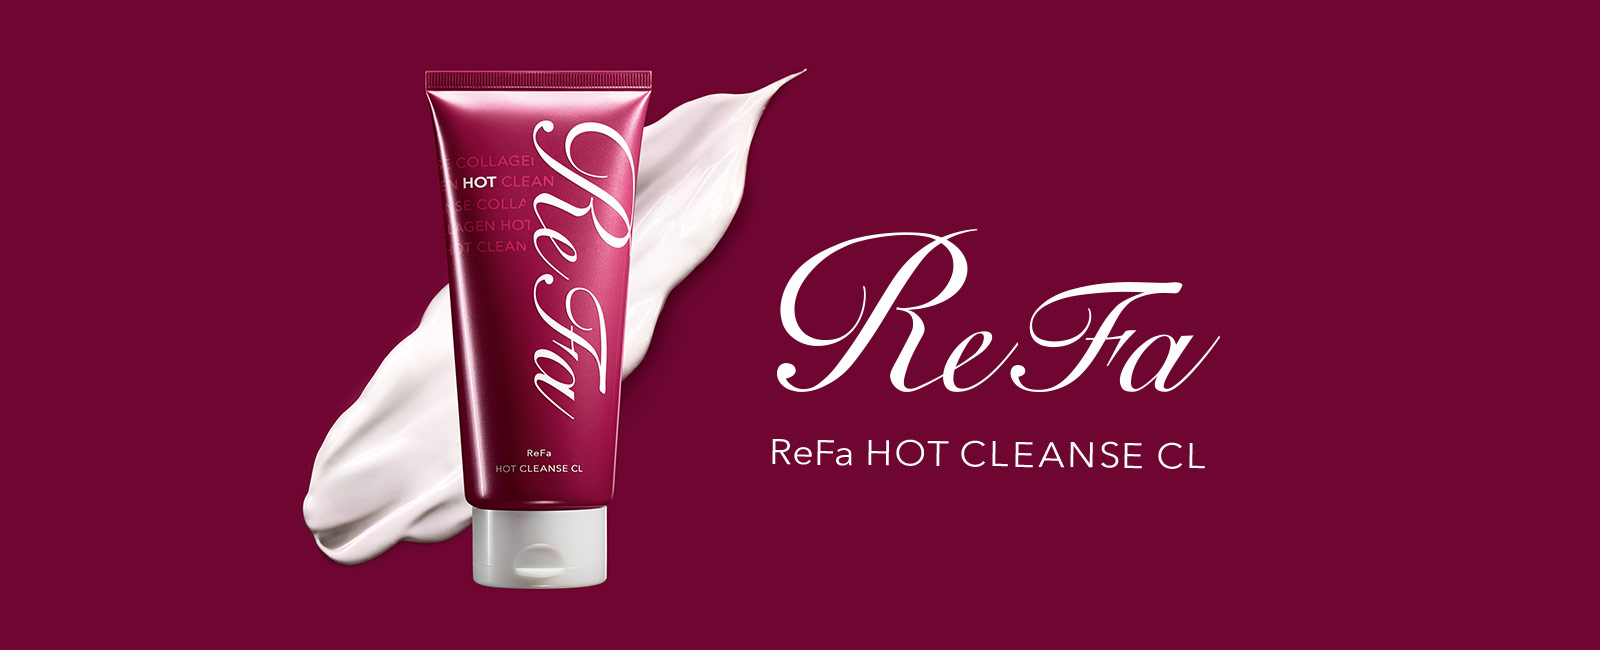 ReFa HOT CLEANSE CL